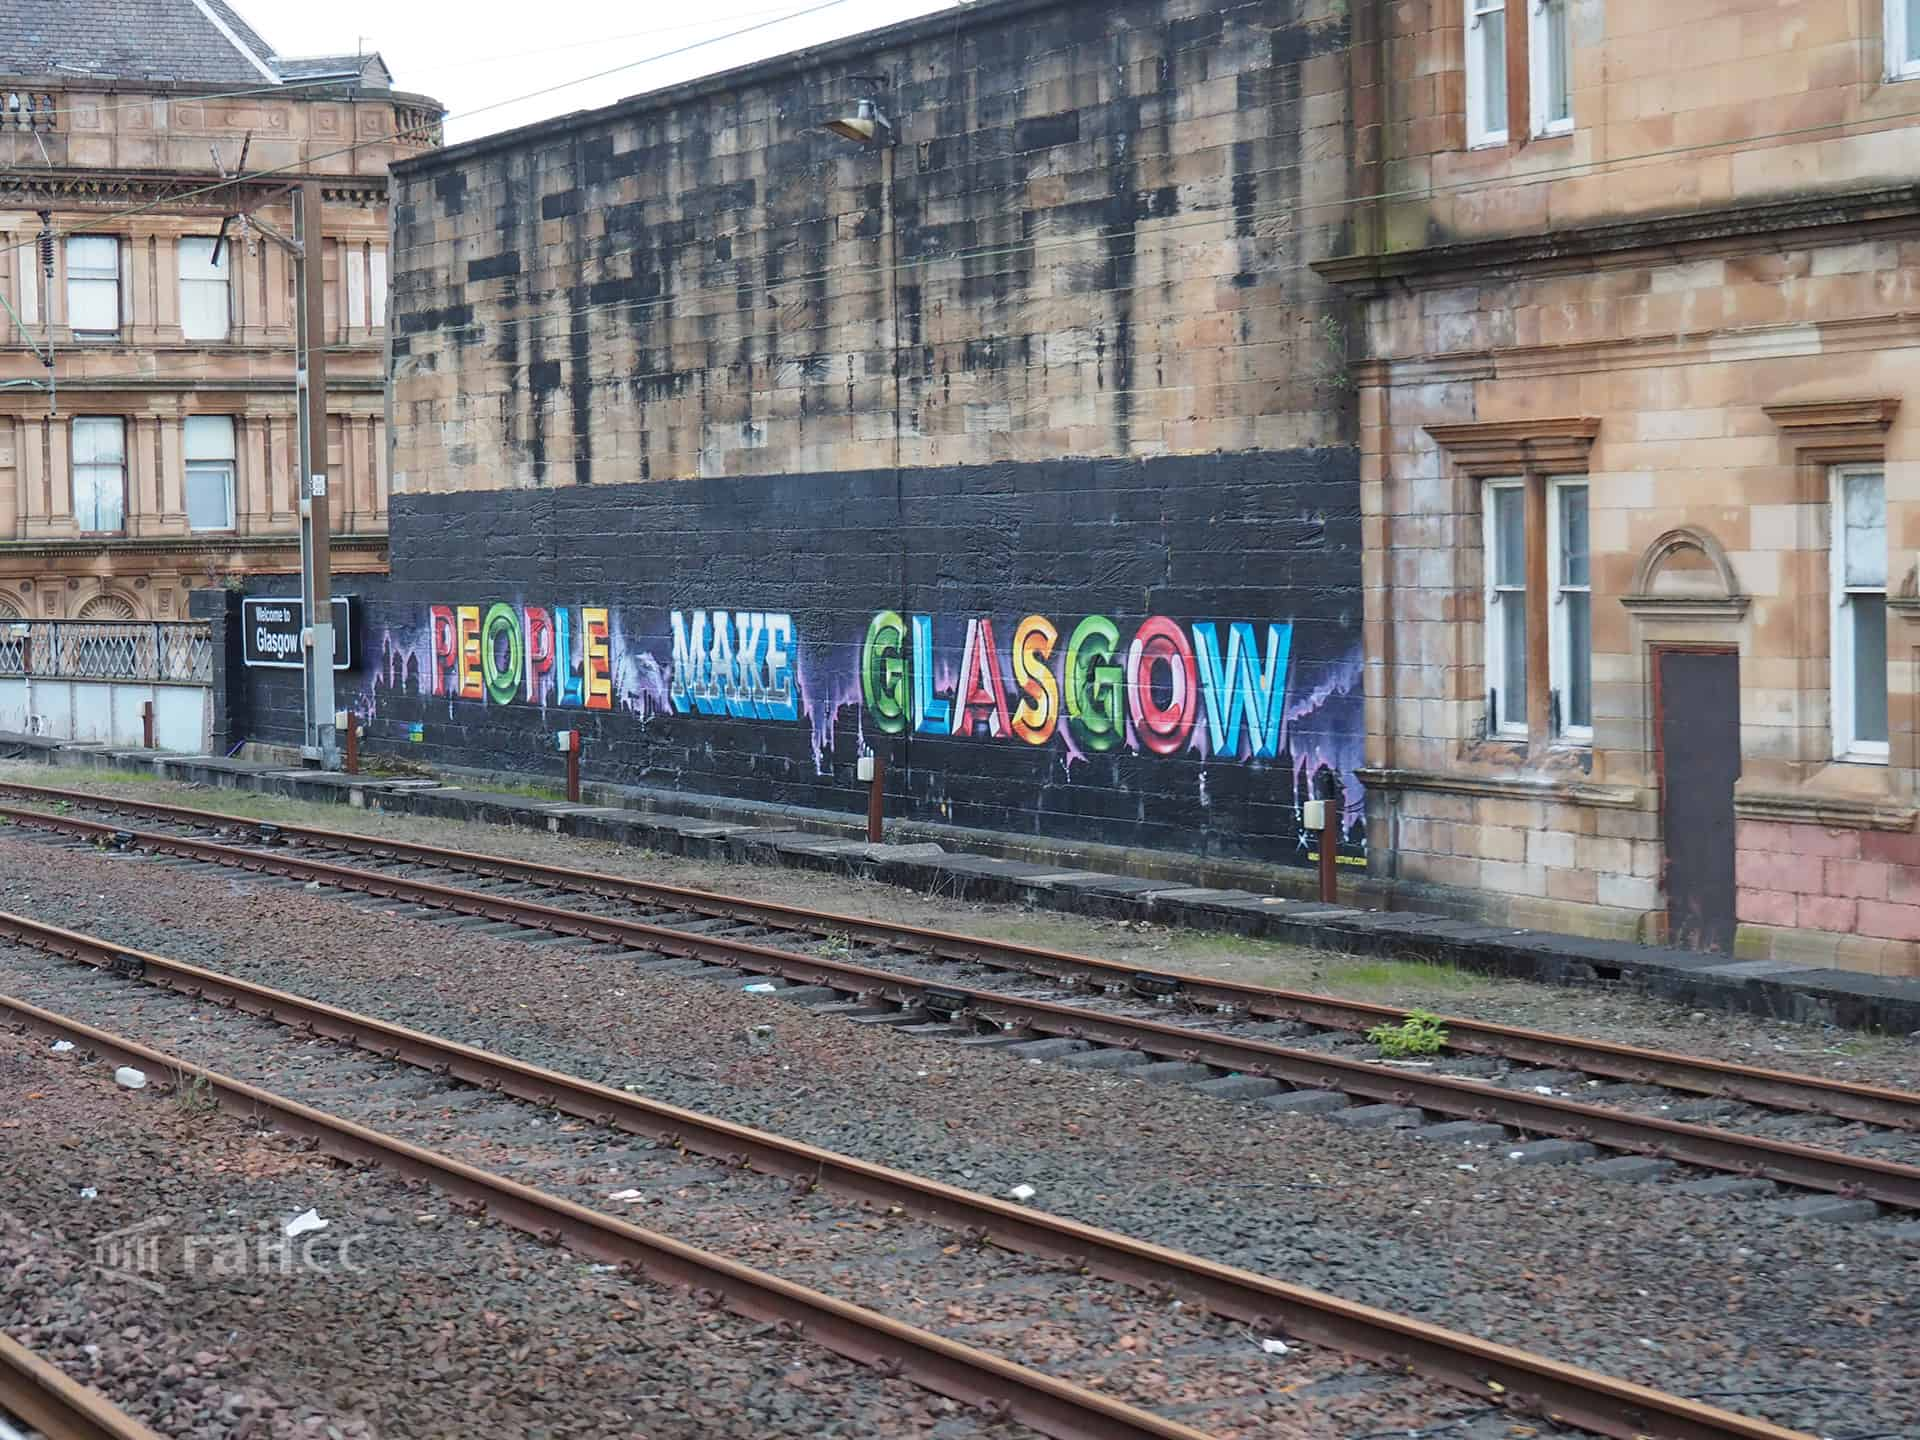 Nice graffiti while approaching Glasgow